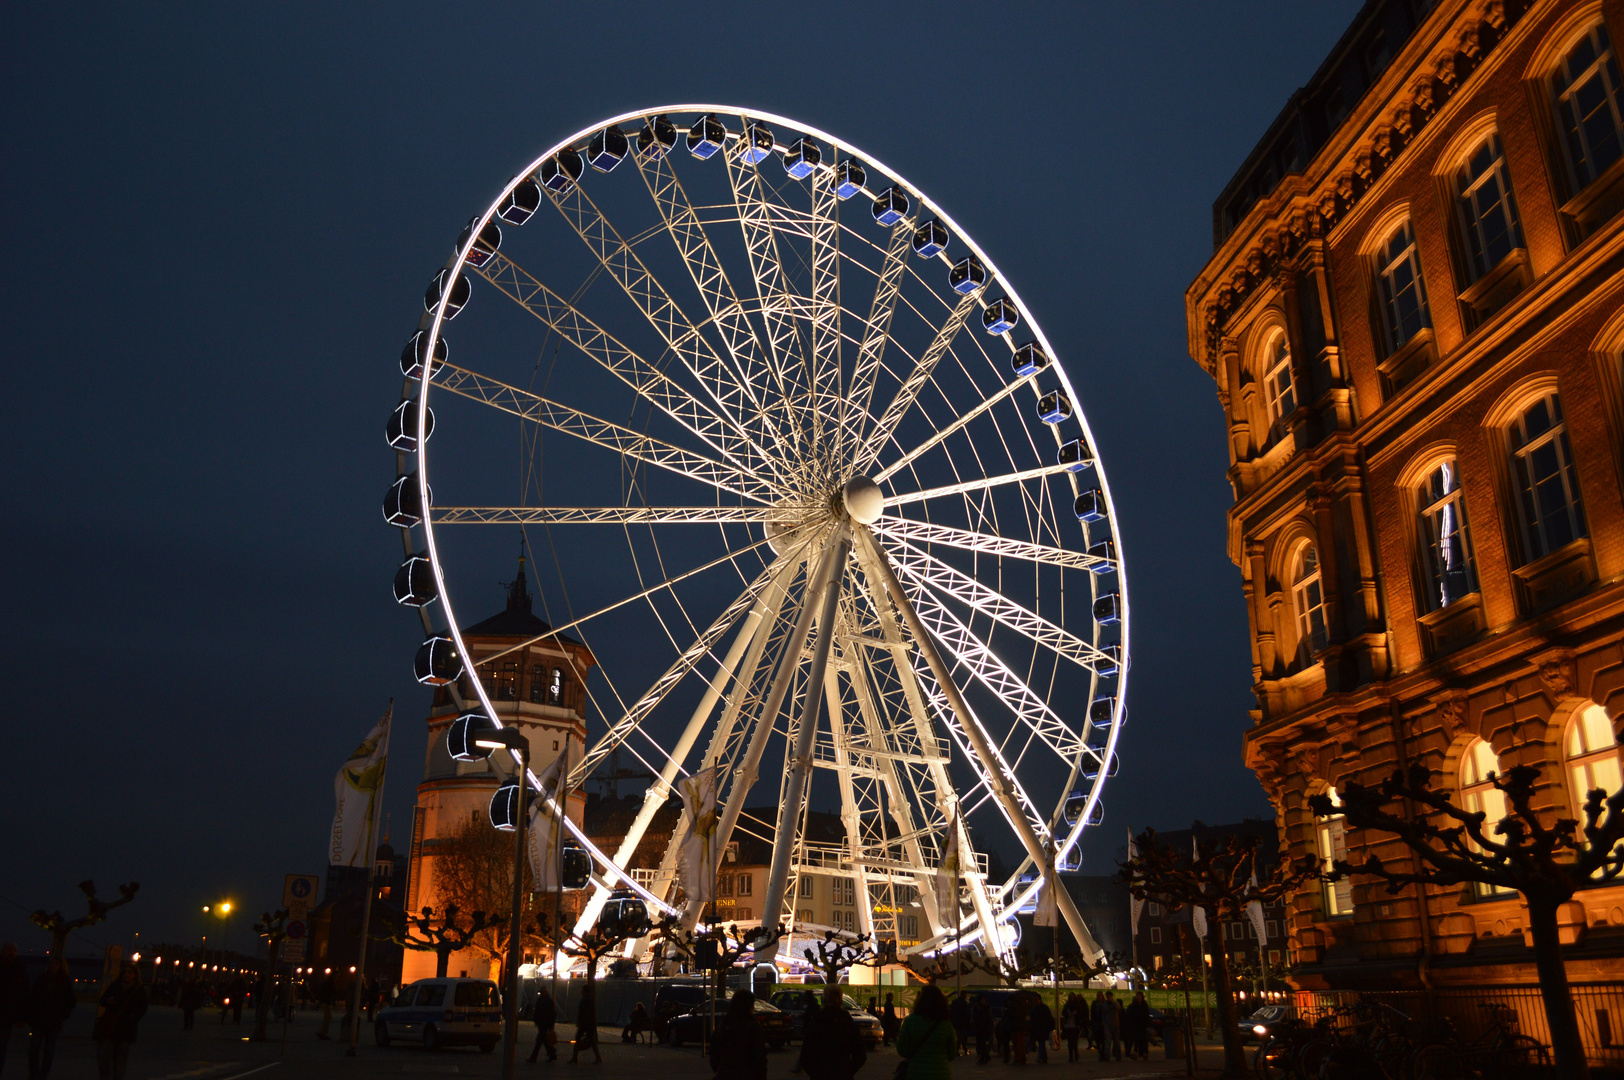 Riesenrad by night!